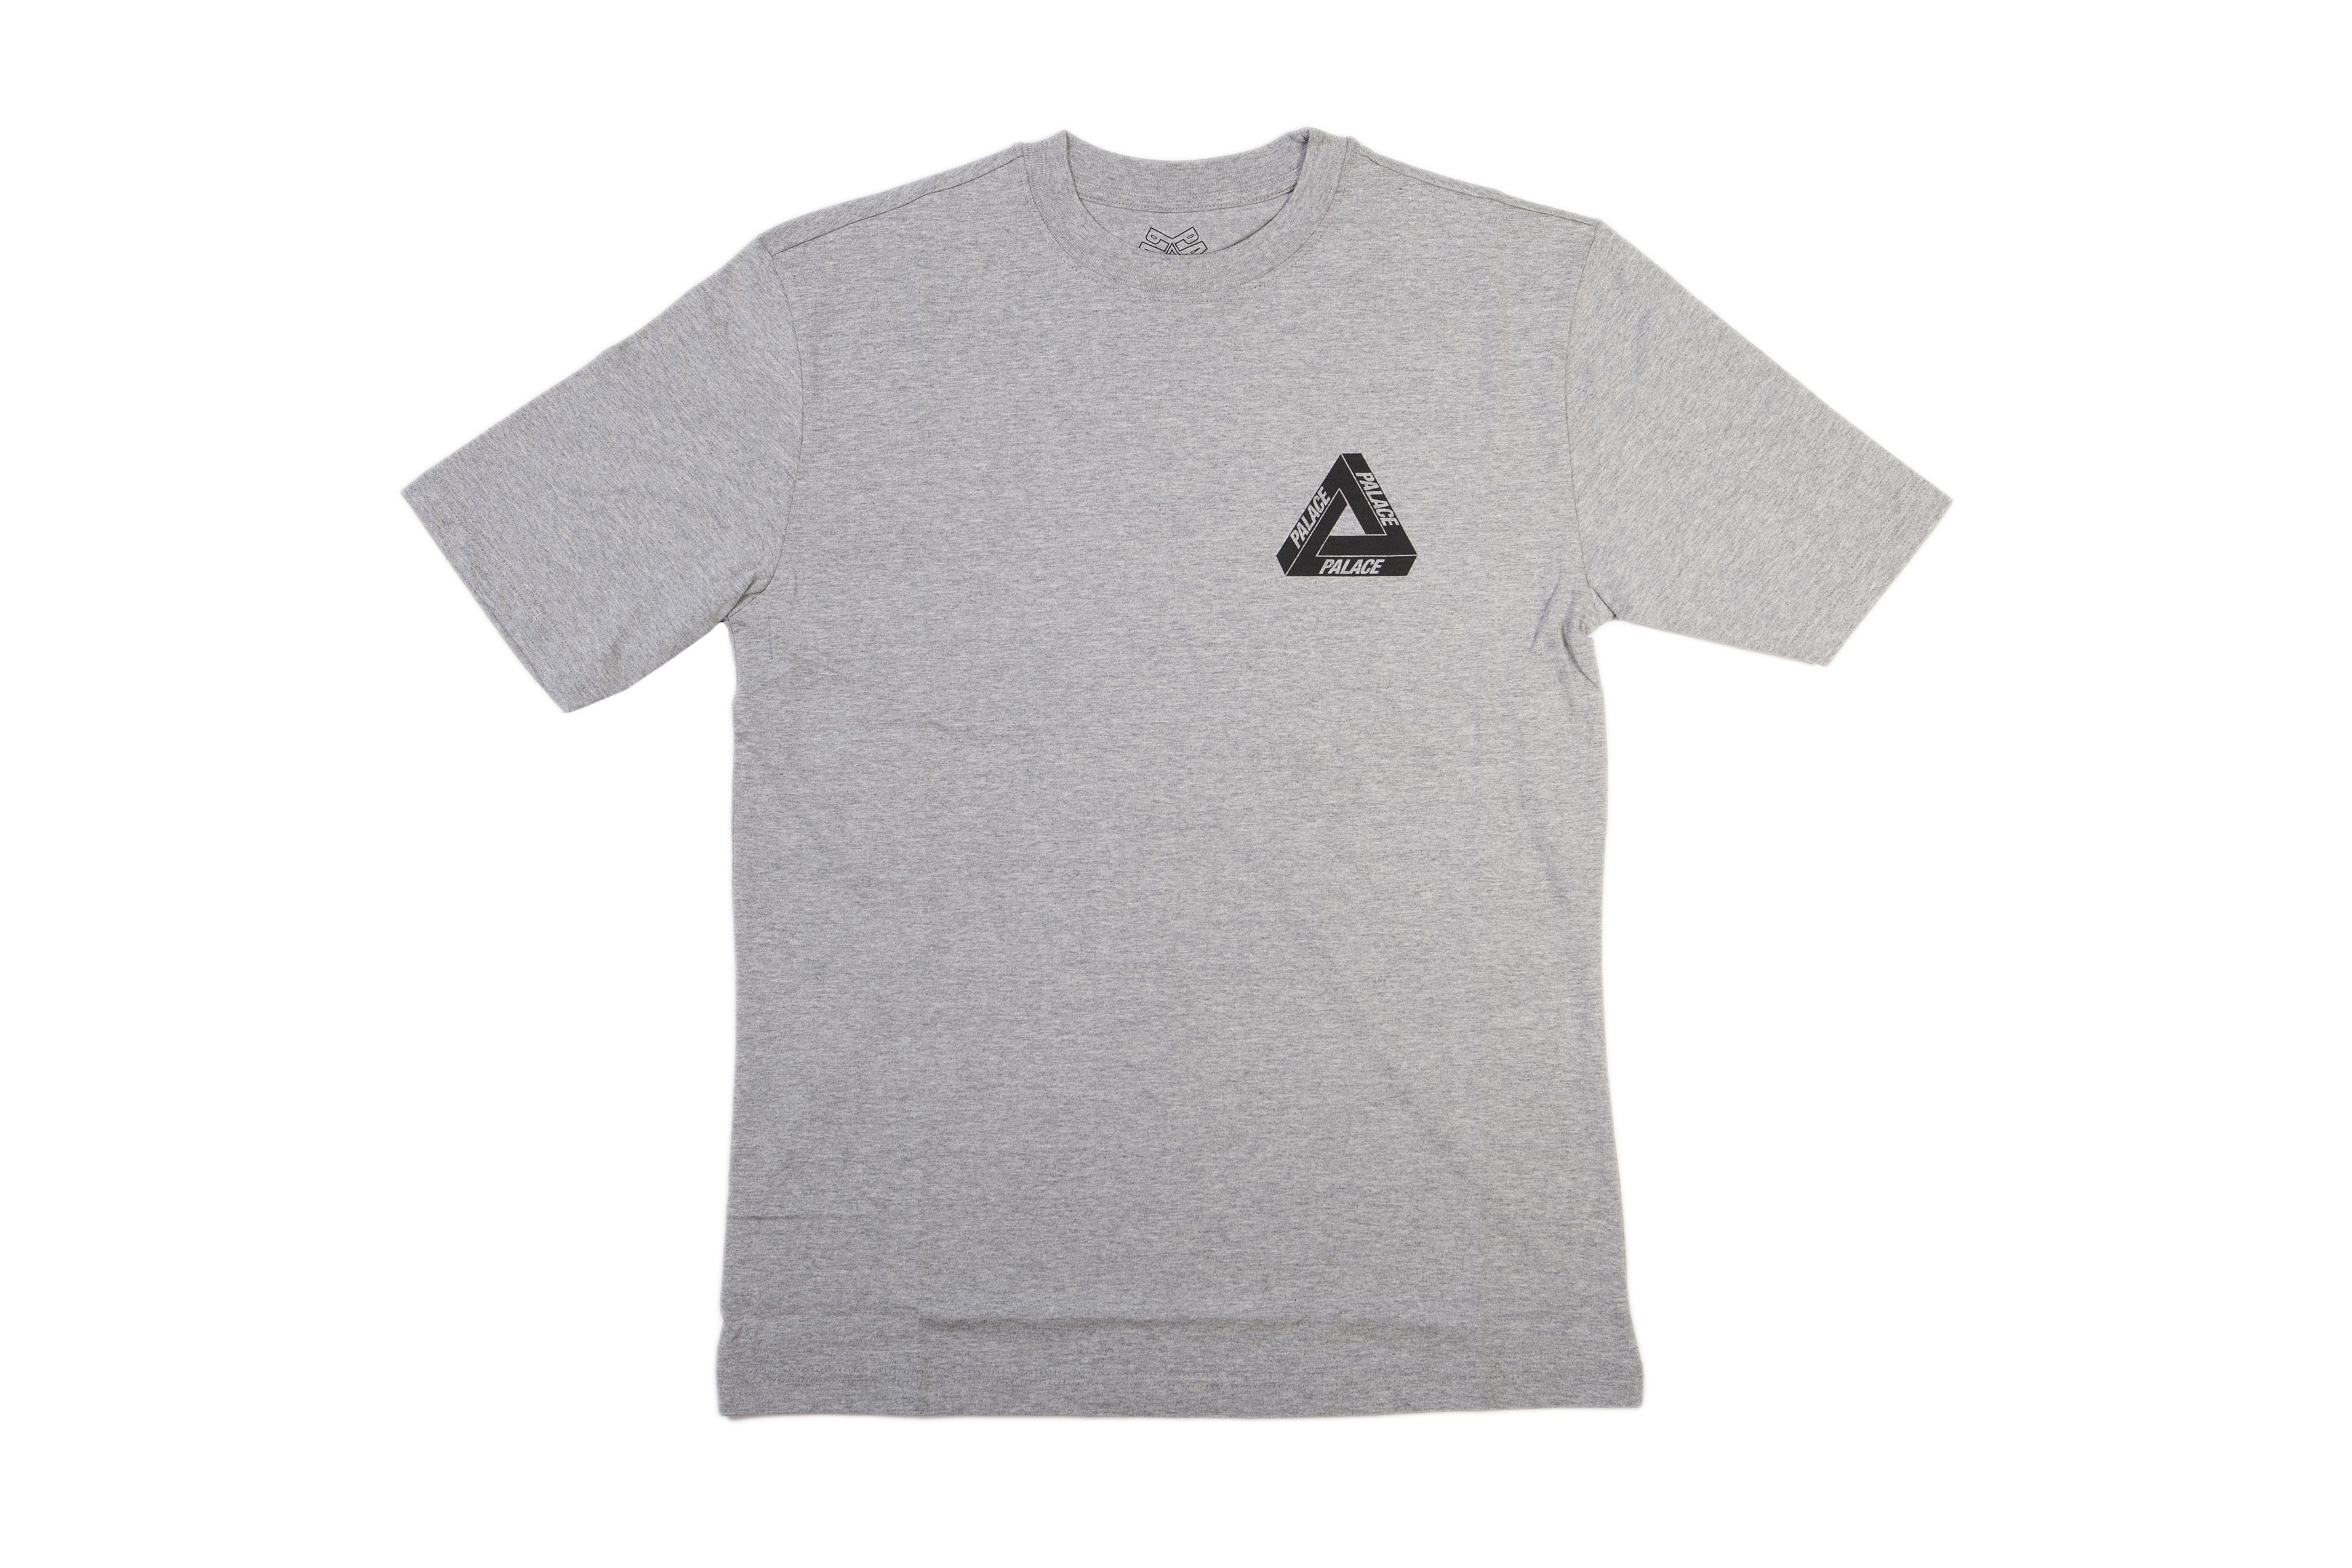 #T-SHIRT #PALACE #SKATEBOARDS - DRURY ITALIA